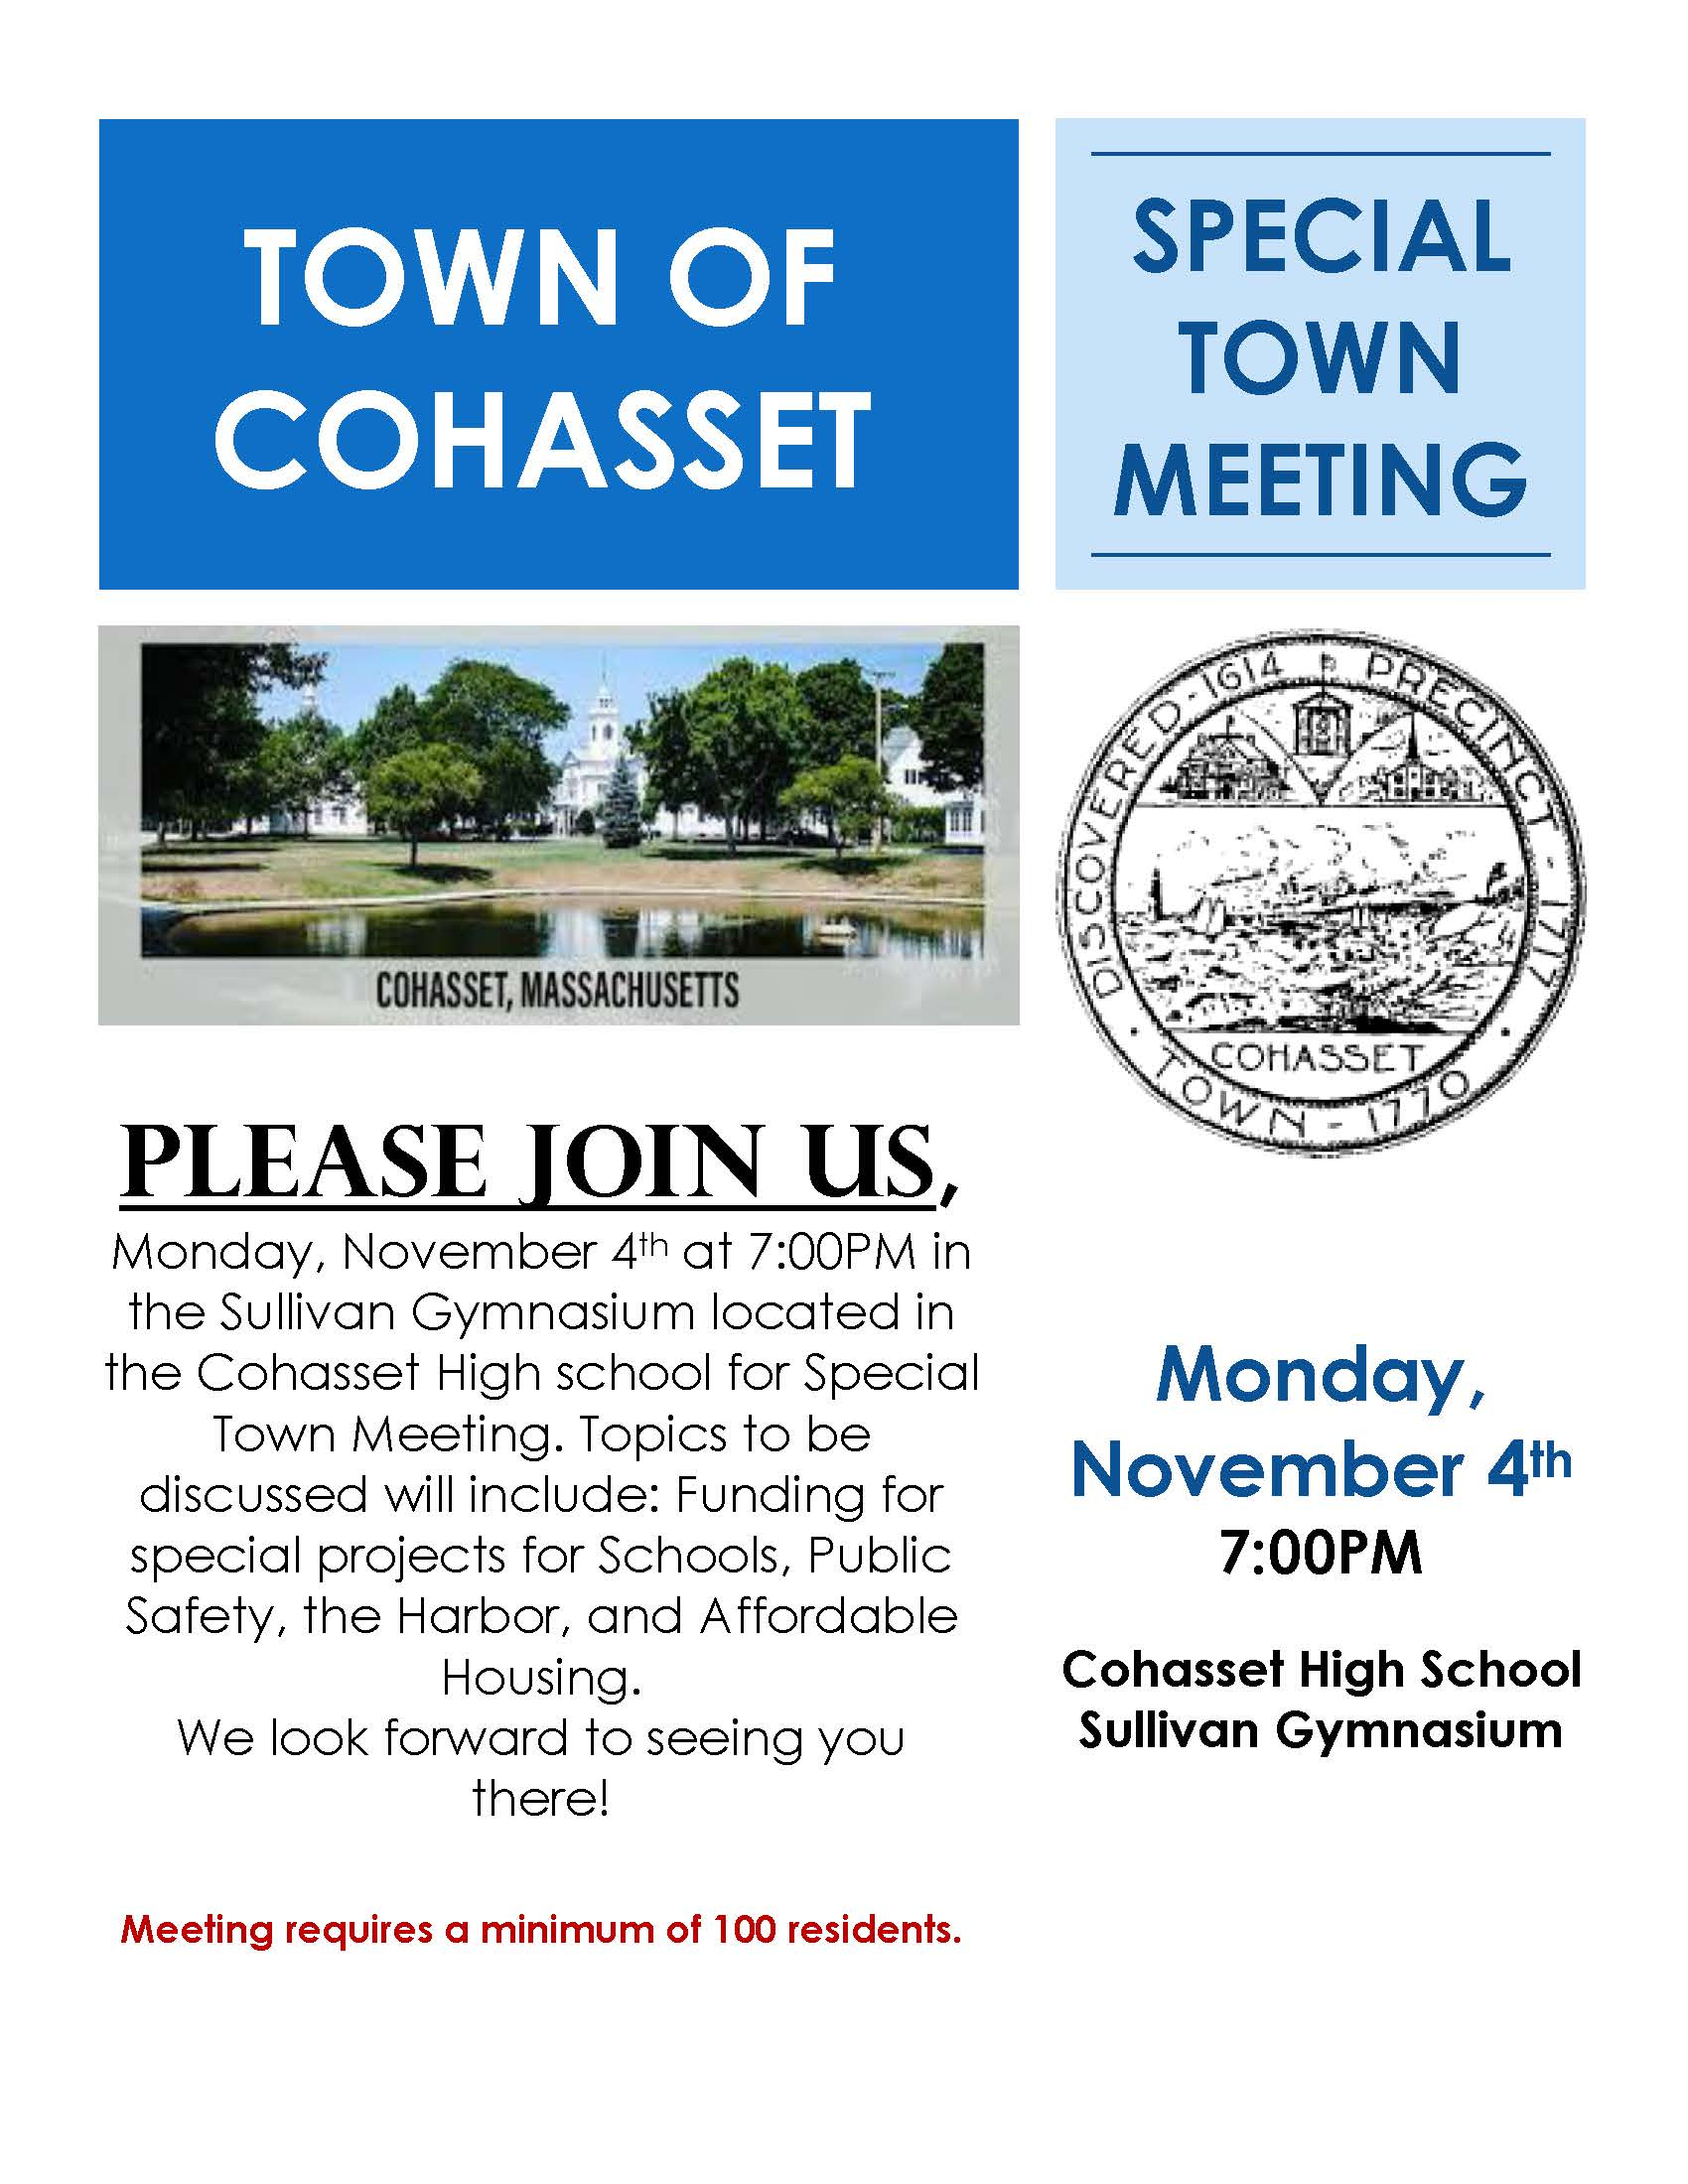 Special Town Meeting Flyer_